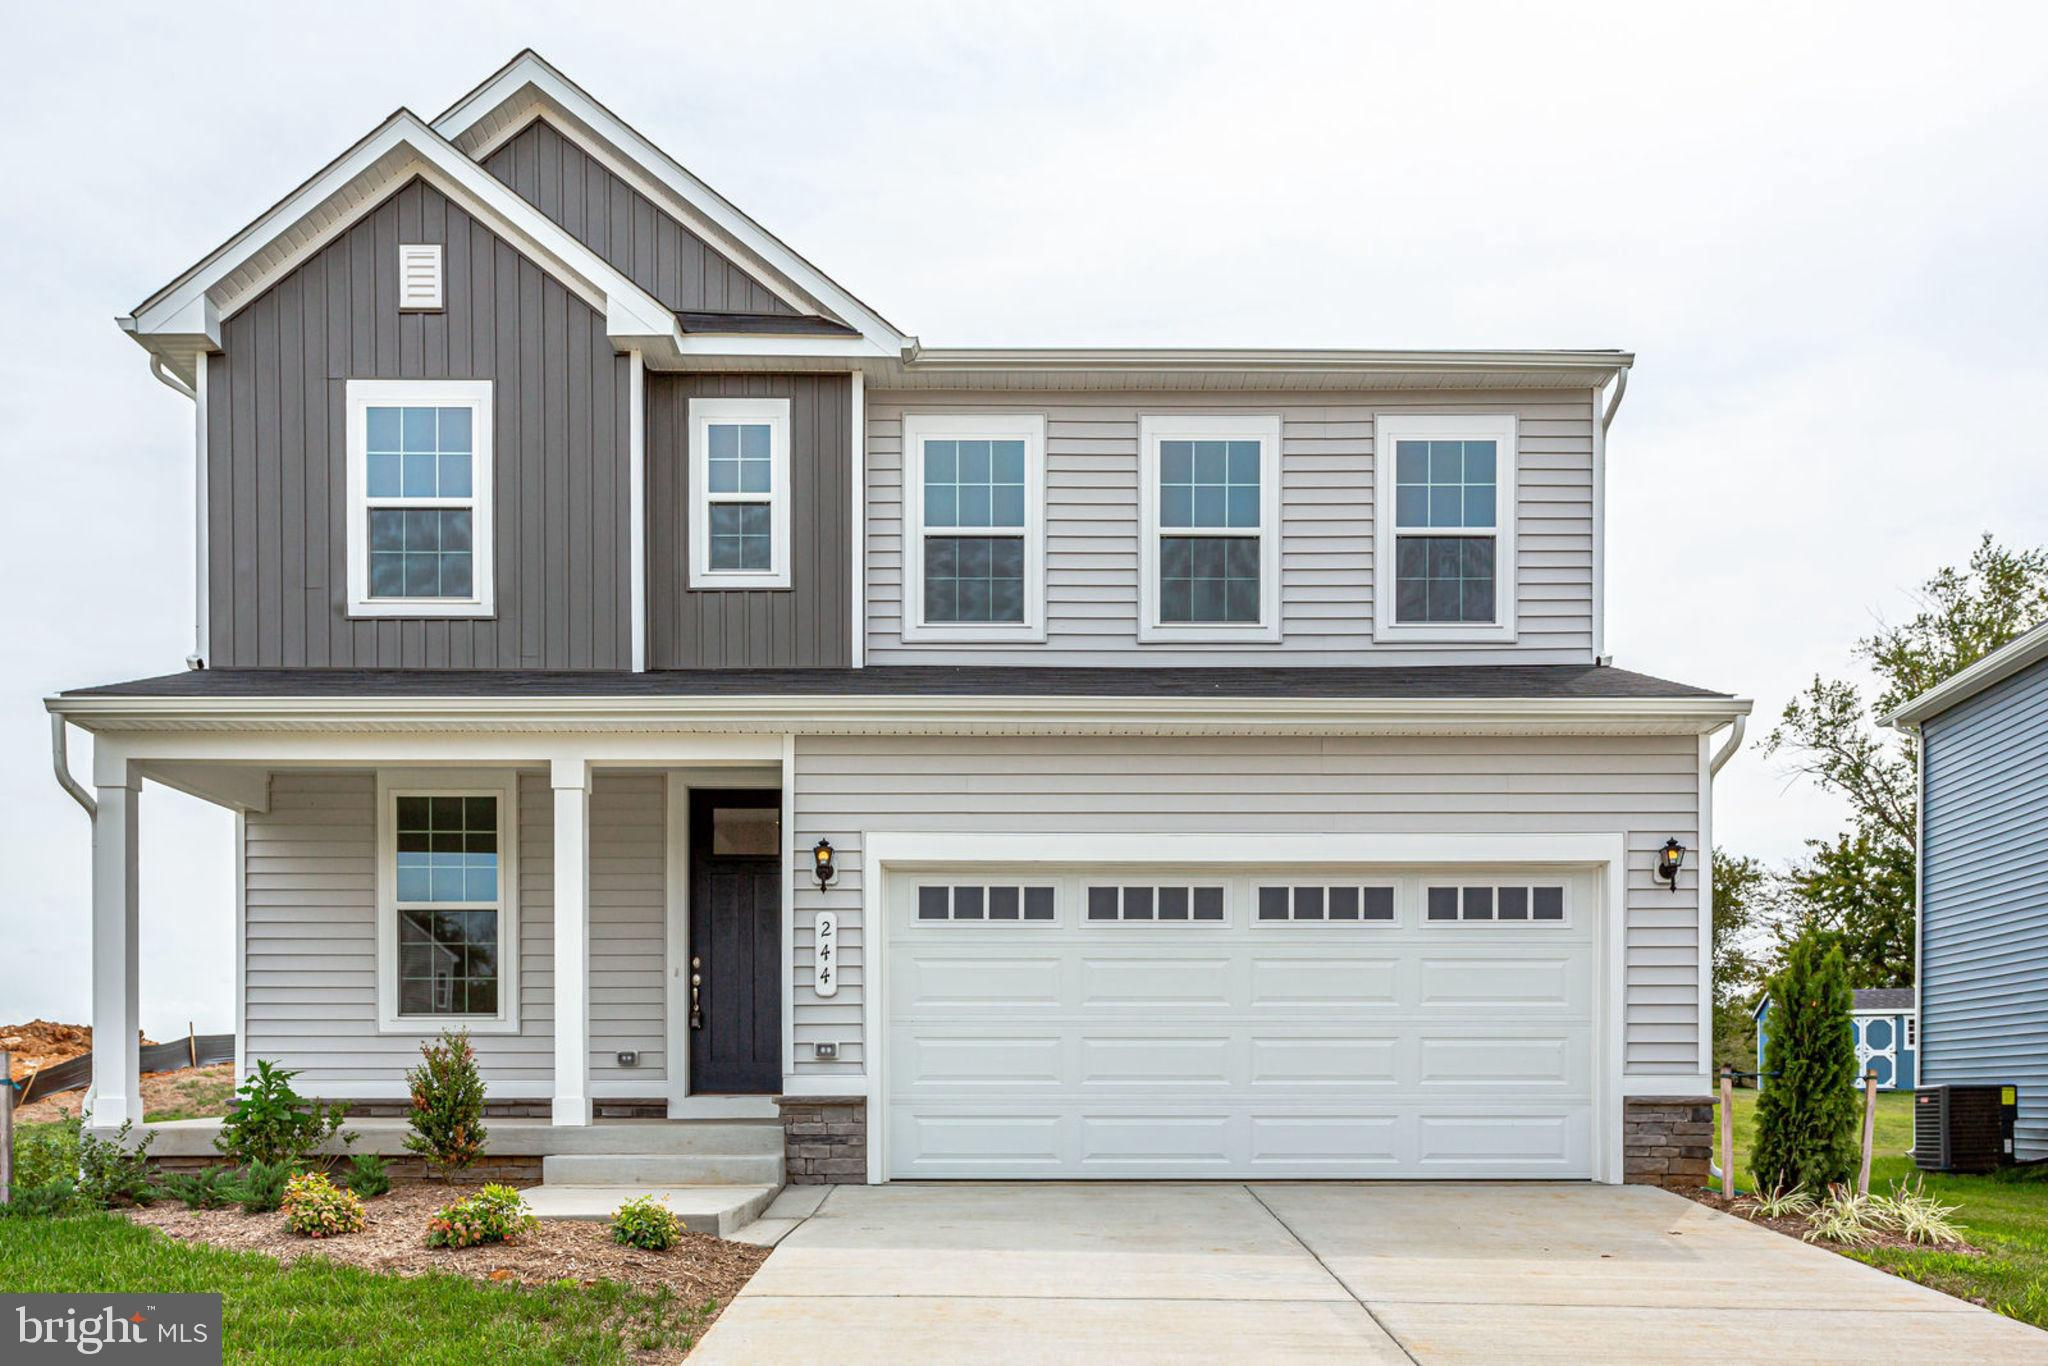 Move-in ready! This beautiful home welcomes you with a charming covered entry. Main-floor highlights